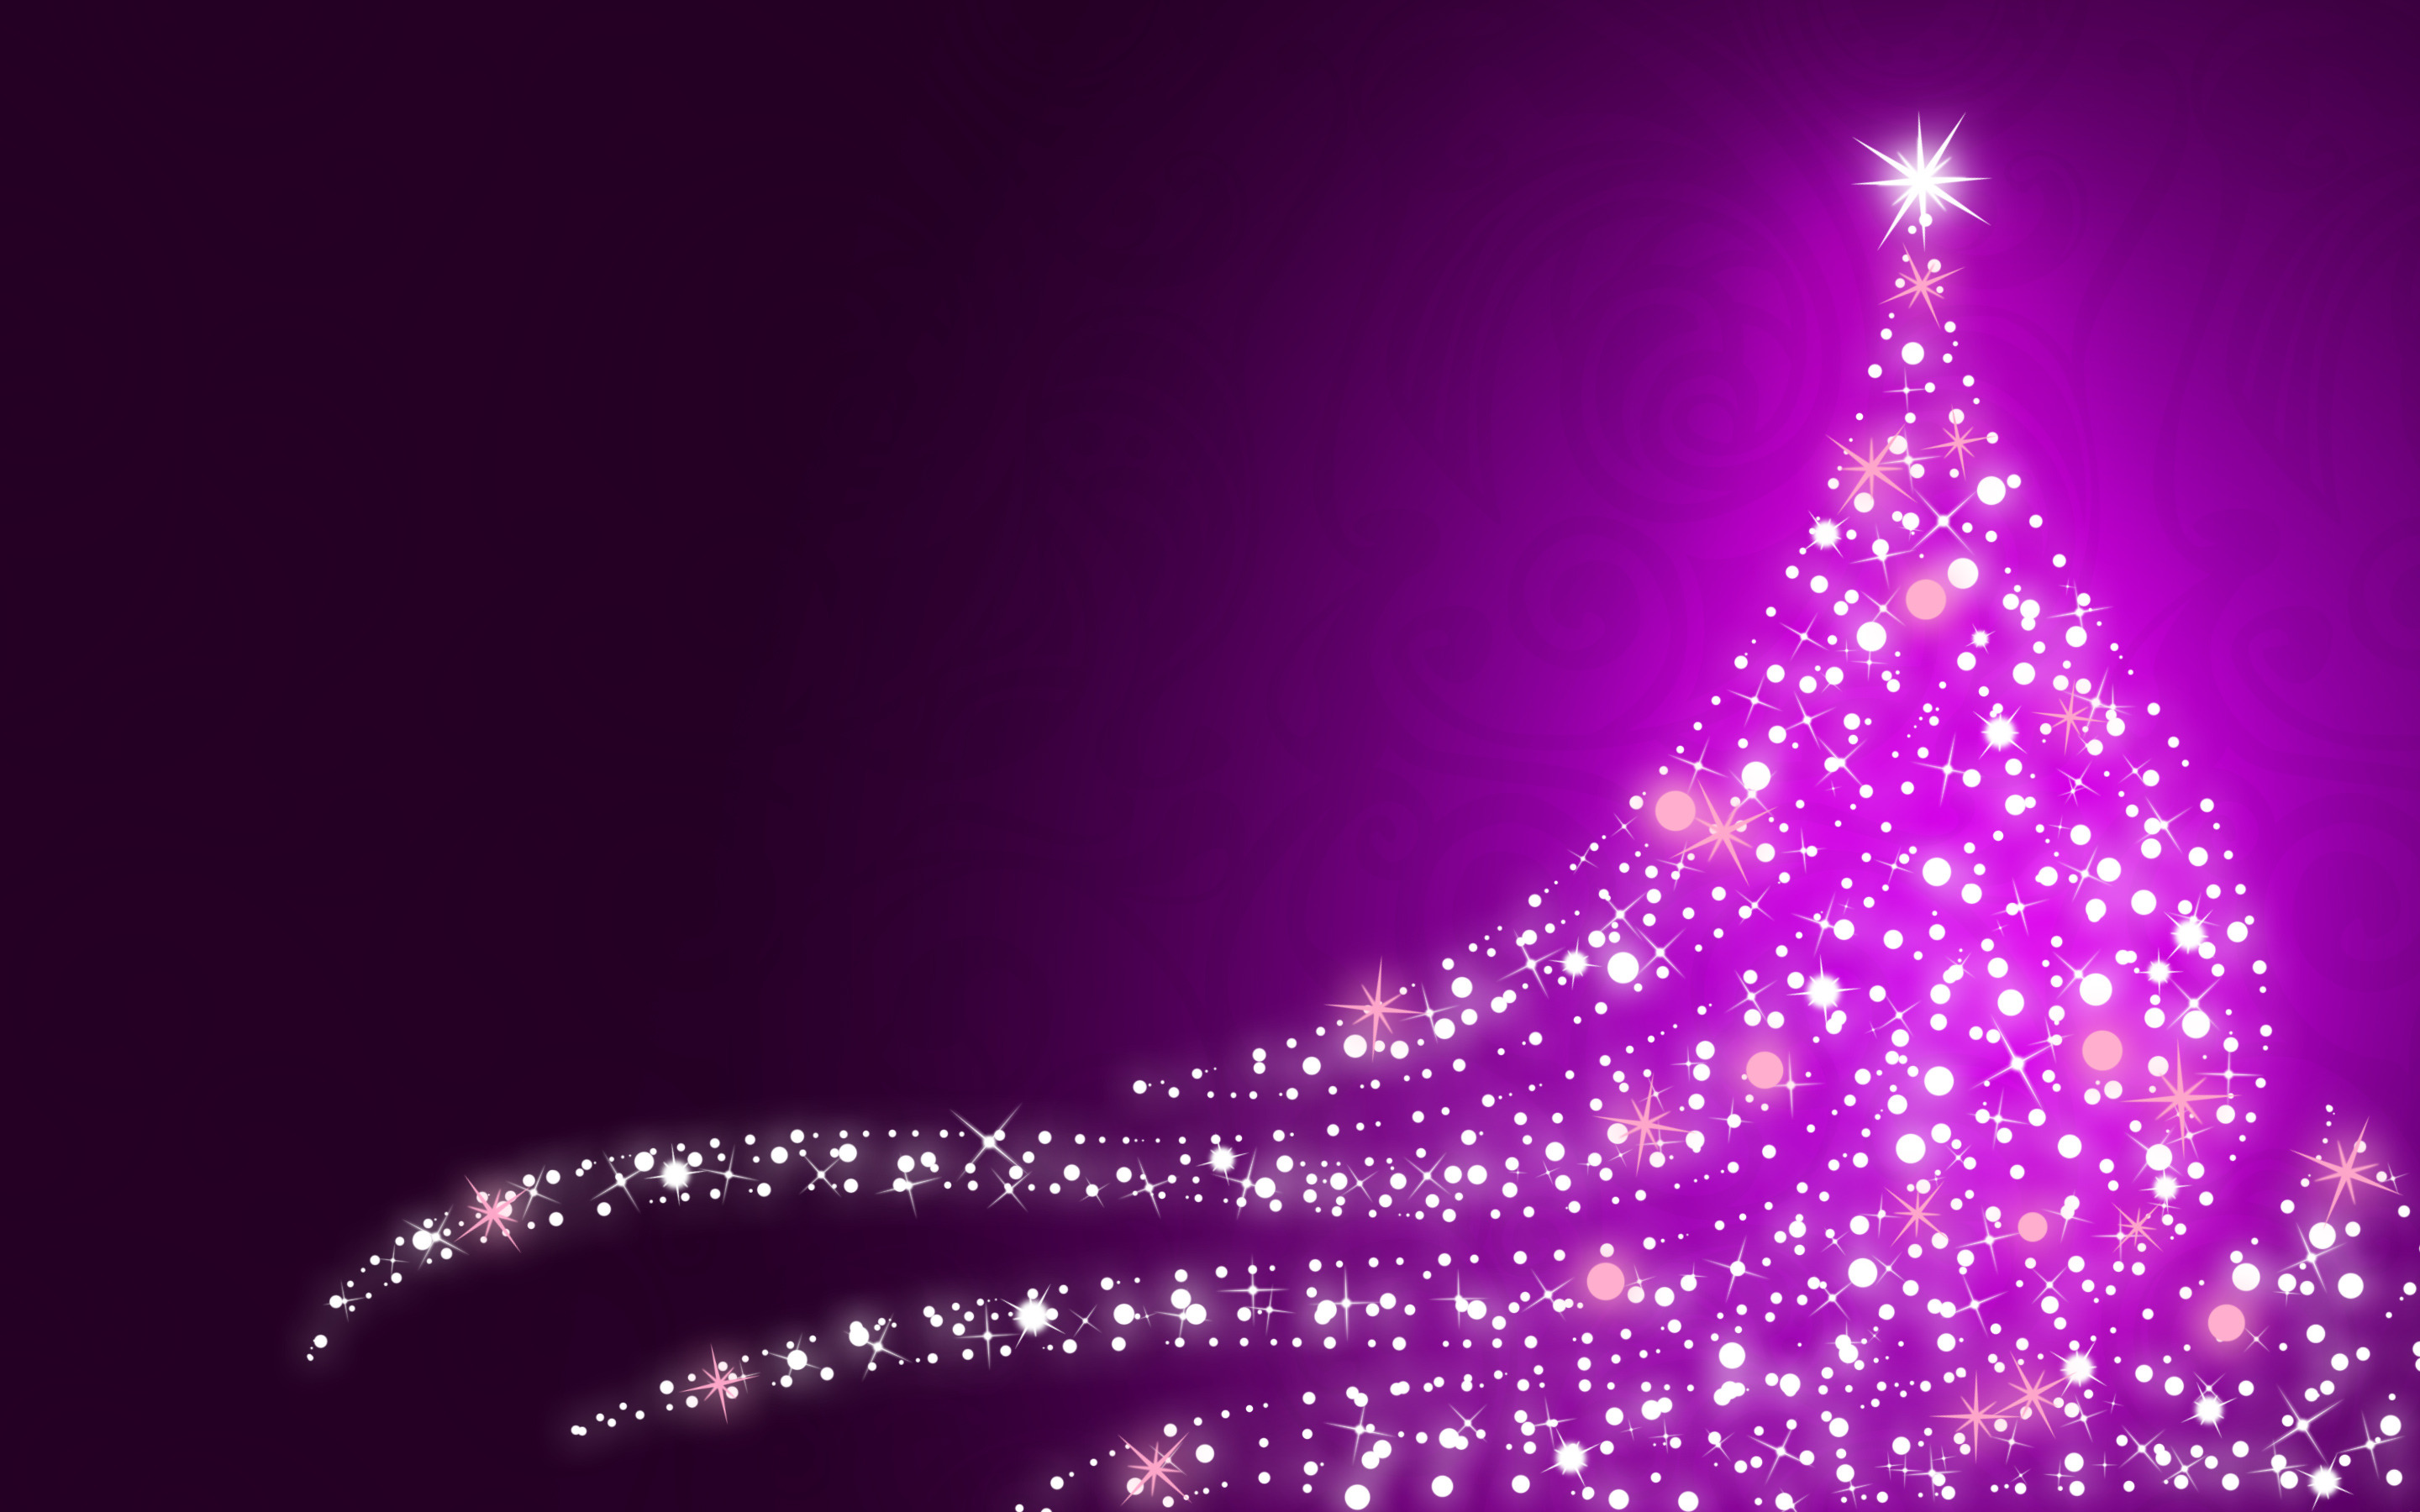 Sparkling Christmas tree wallpaper 15932 2880x1800